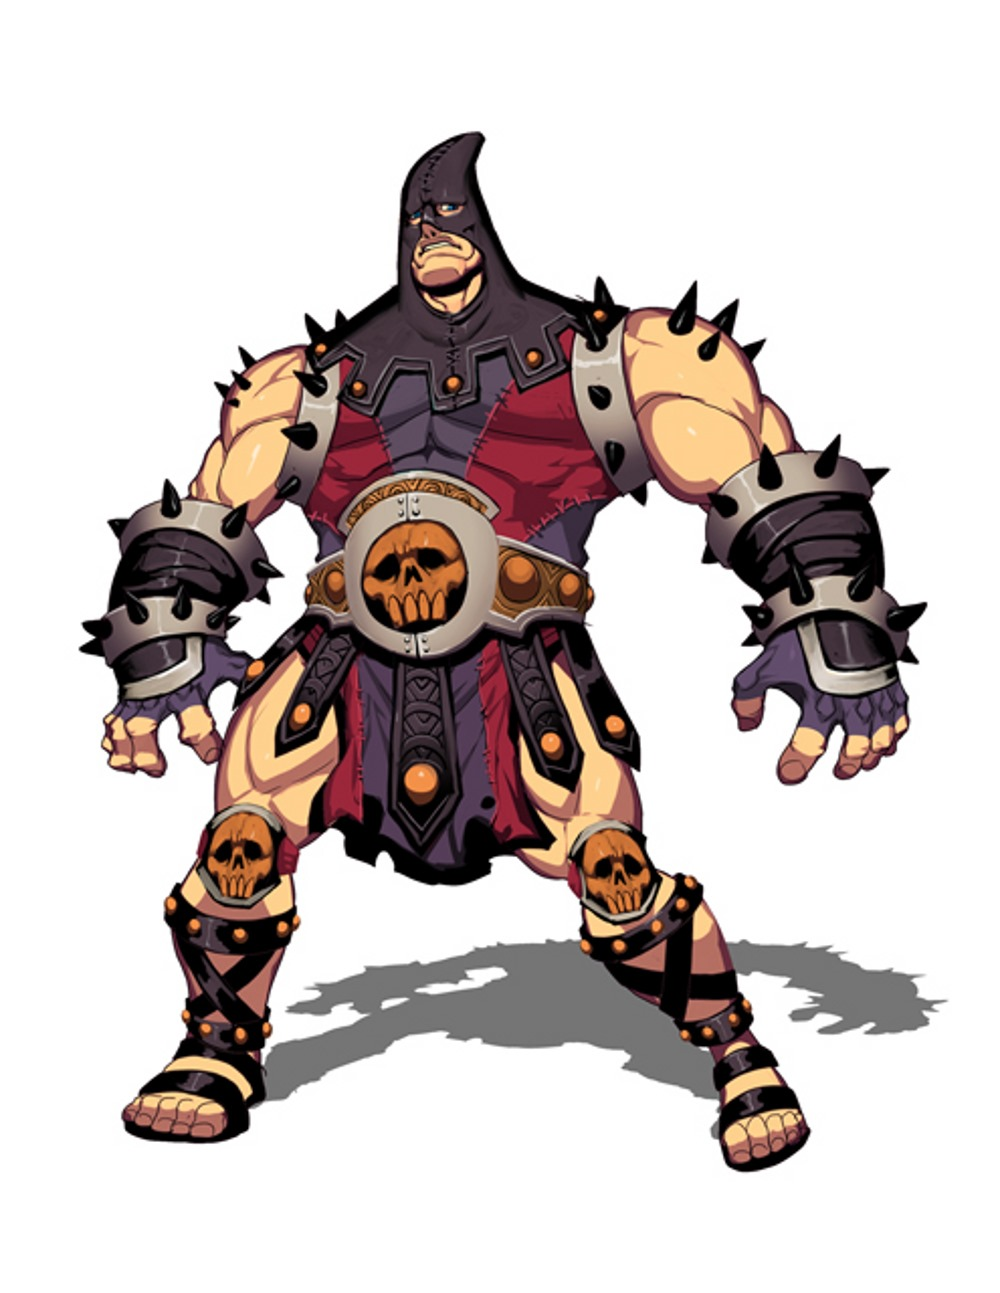 6souls games damage from frames crouching will hitbox combo kick hits easier active frame super opponent with that stun fadc block after increased into version opponents when total medium hurtbox during have first same second more this startup characters heavy down start-up does making less standing meter been before only changed gets